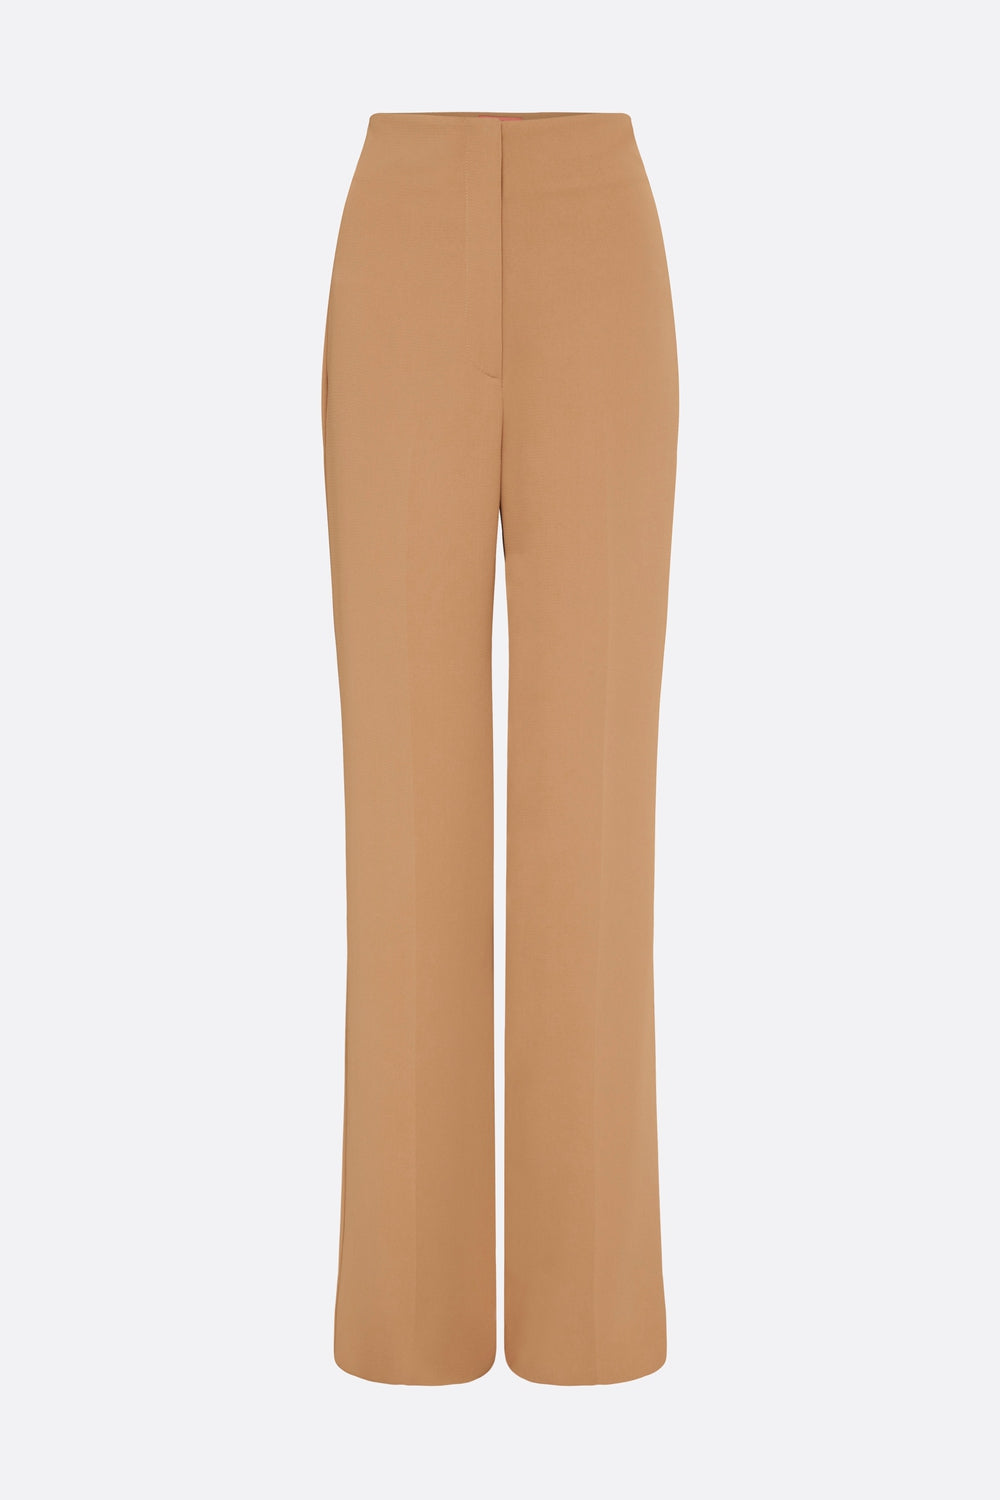 INSTANT CONNECTION PANT